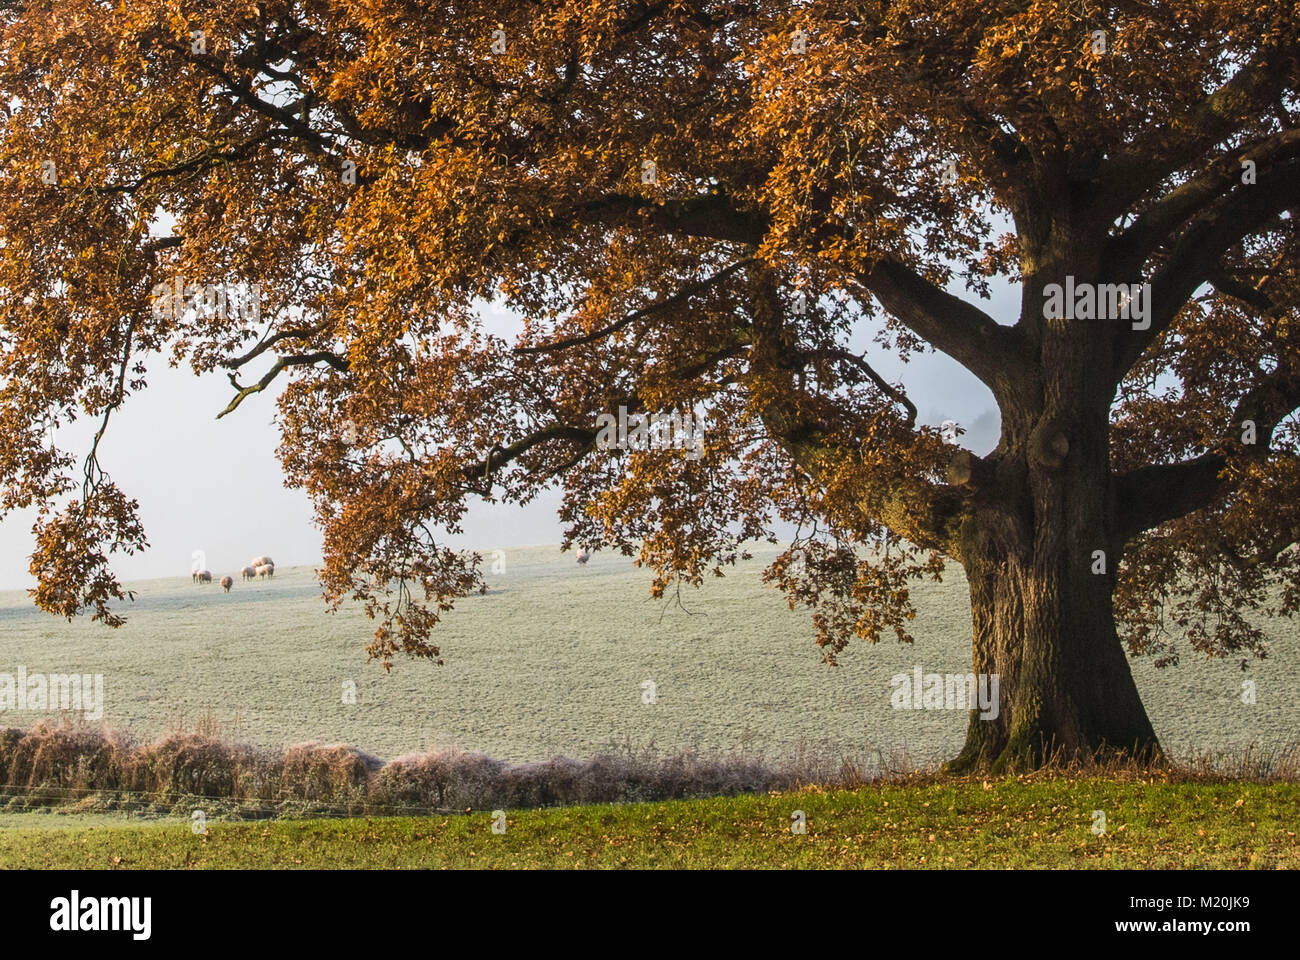 Large autumn tree in field framing sheep in the misty background landscape of Staffordshire England UK. - Stock Image